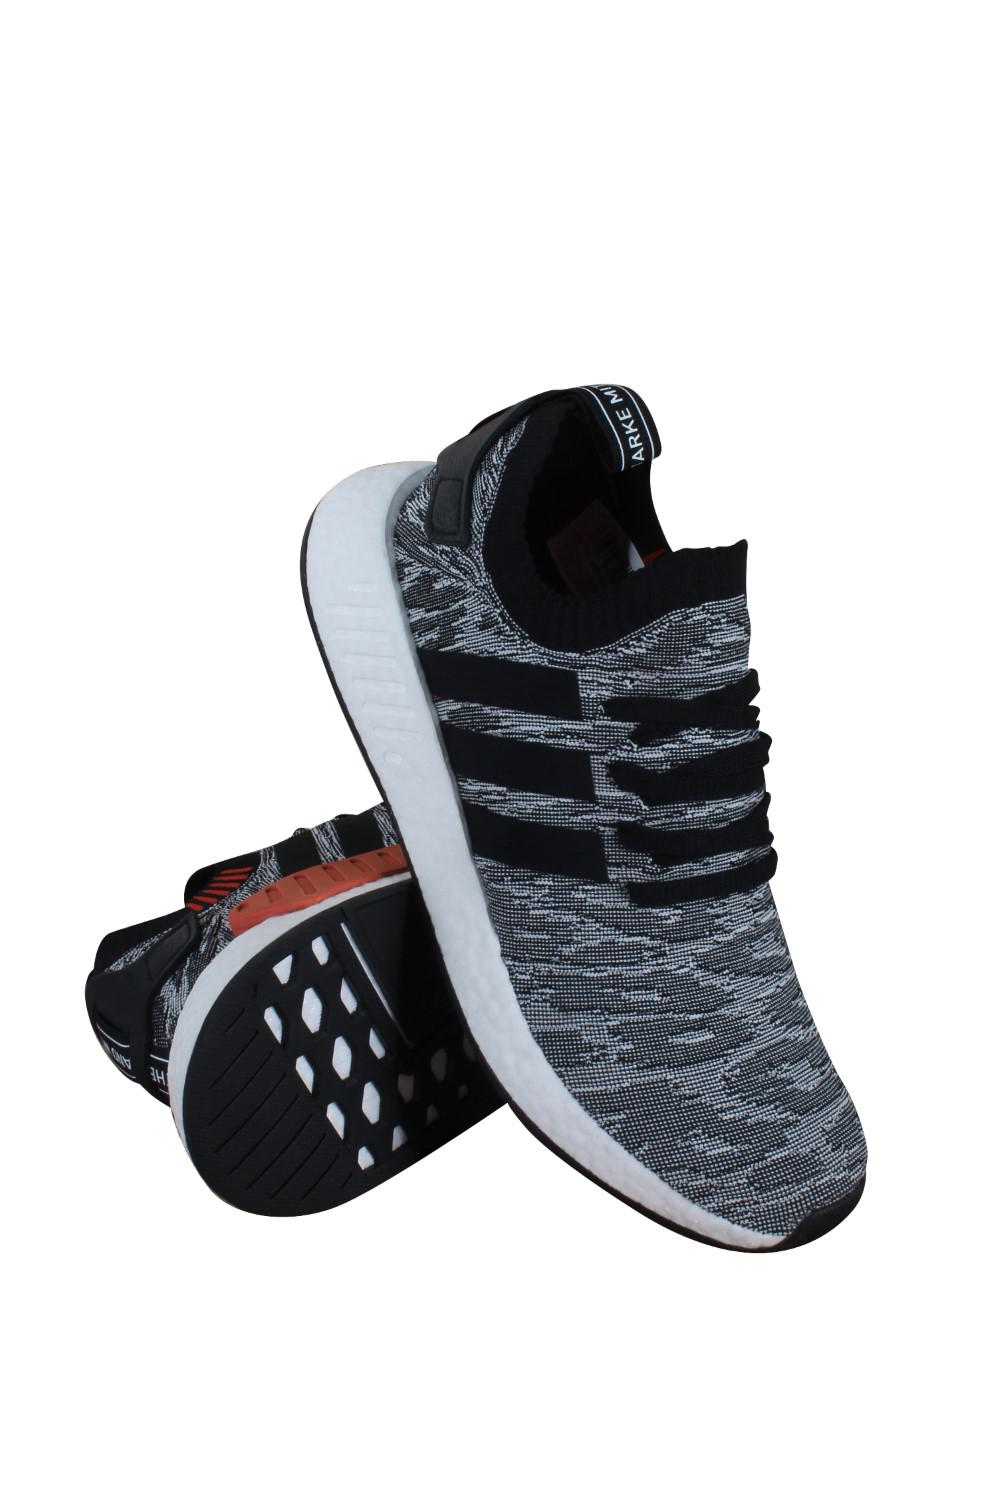 aef8034ce85bd Sports   Outdoors adidas Mens NMD r2 Pk Trainers BY9409